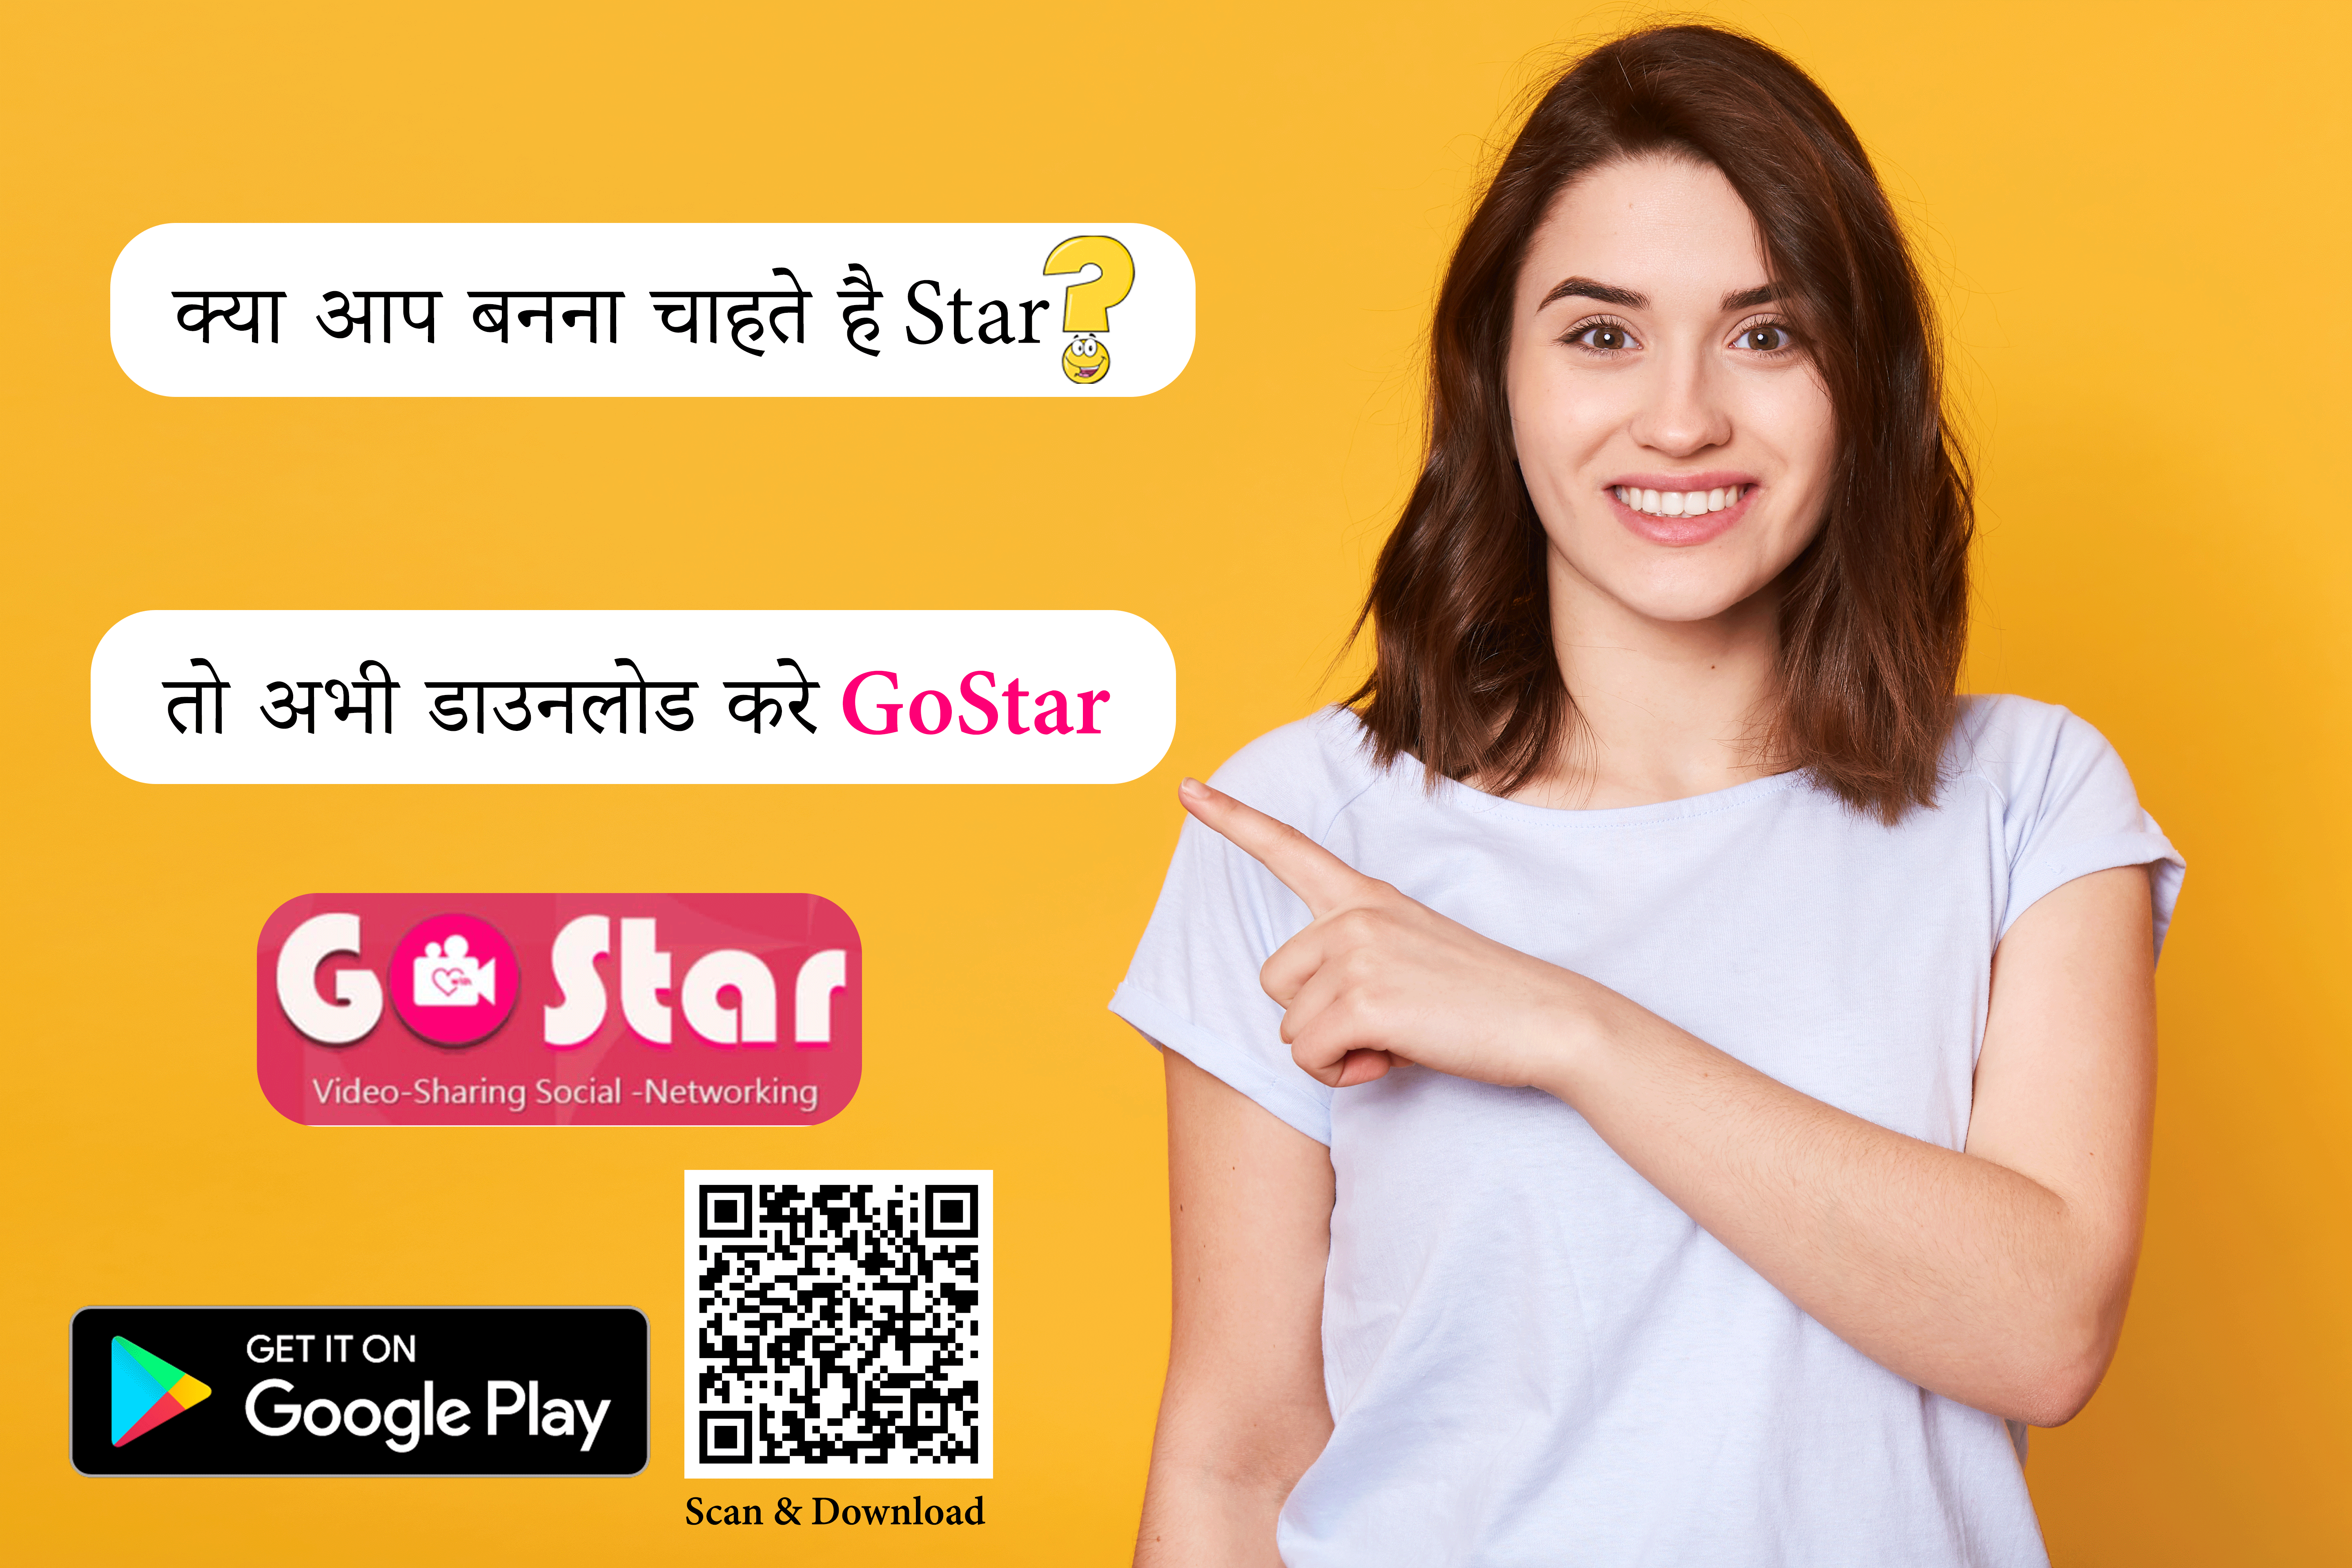 GoStar Indian Video-Sharing Social-Networking App